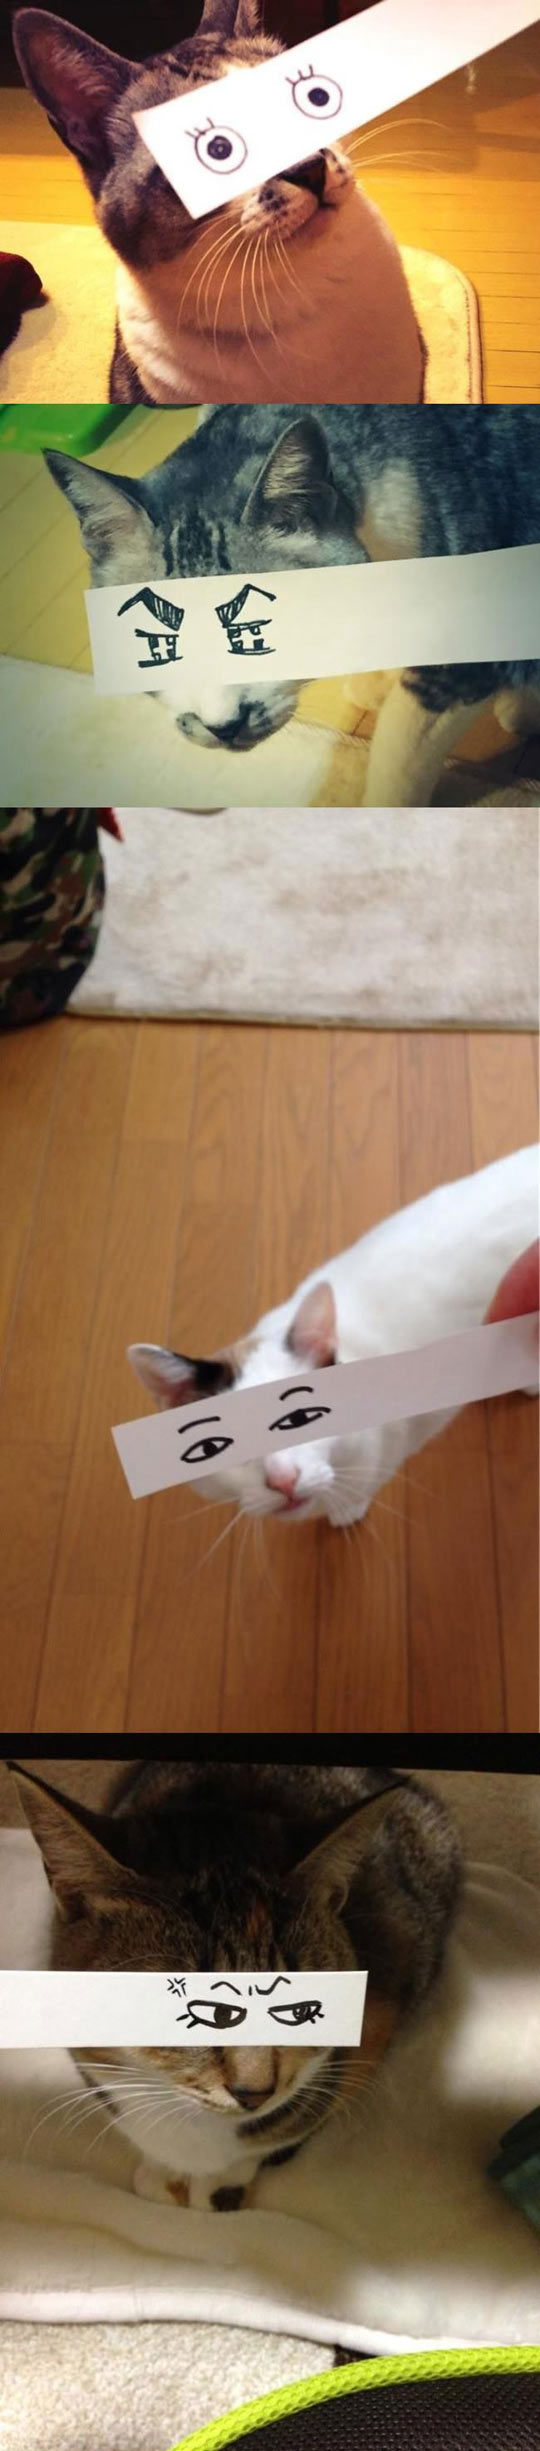 funny-cats-draw-eyes-paper